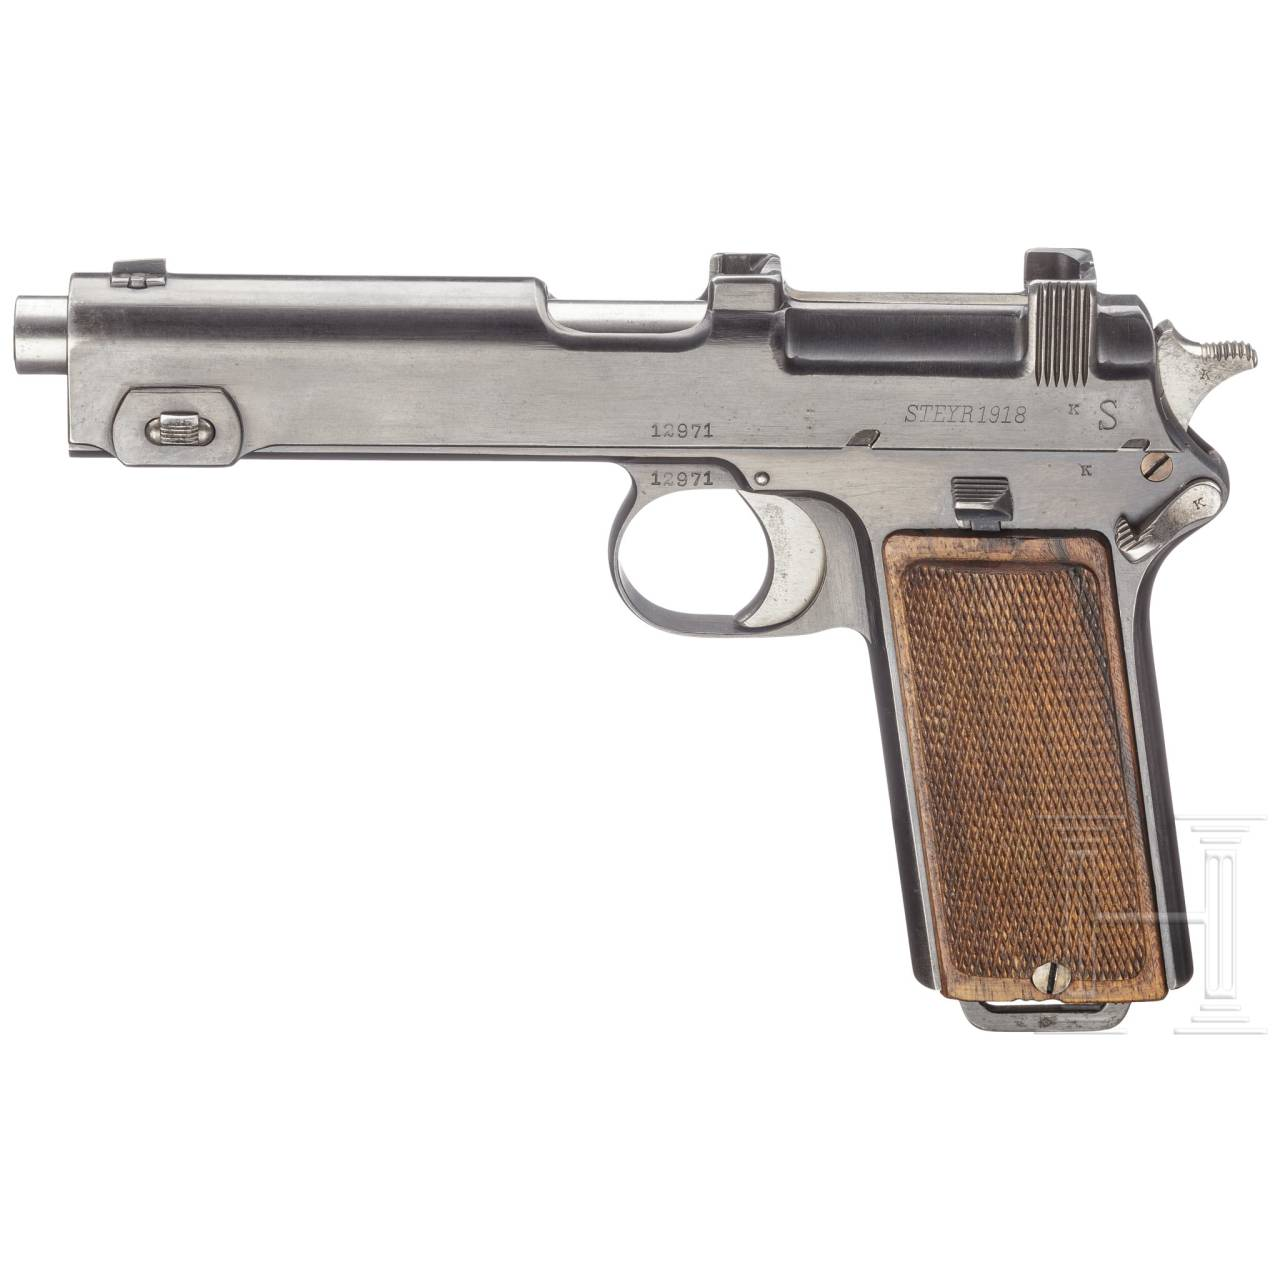 A Steyr Mod. 1912 from the 2nd contract for Bavaria, with holster